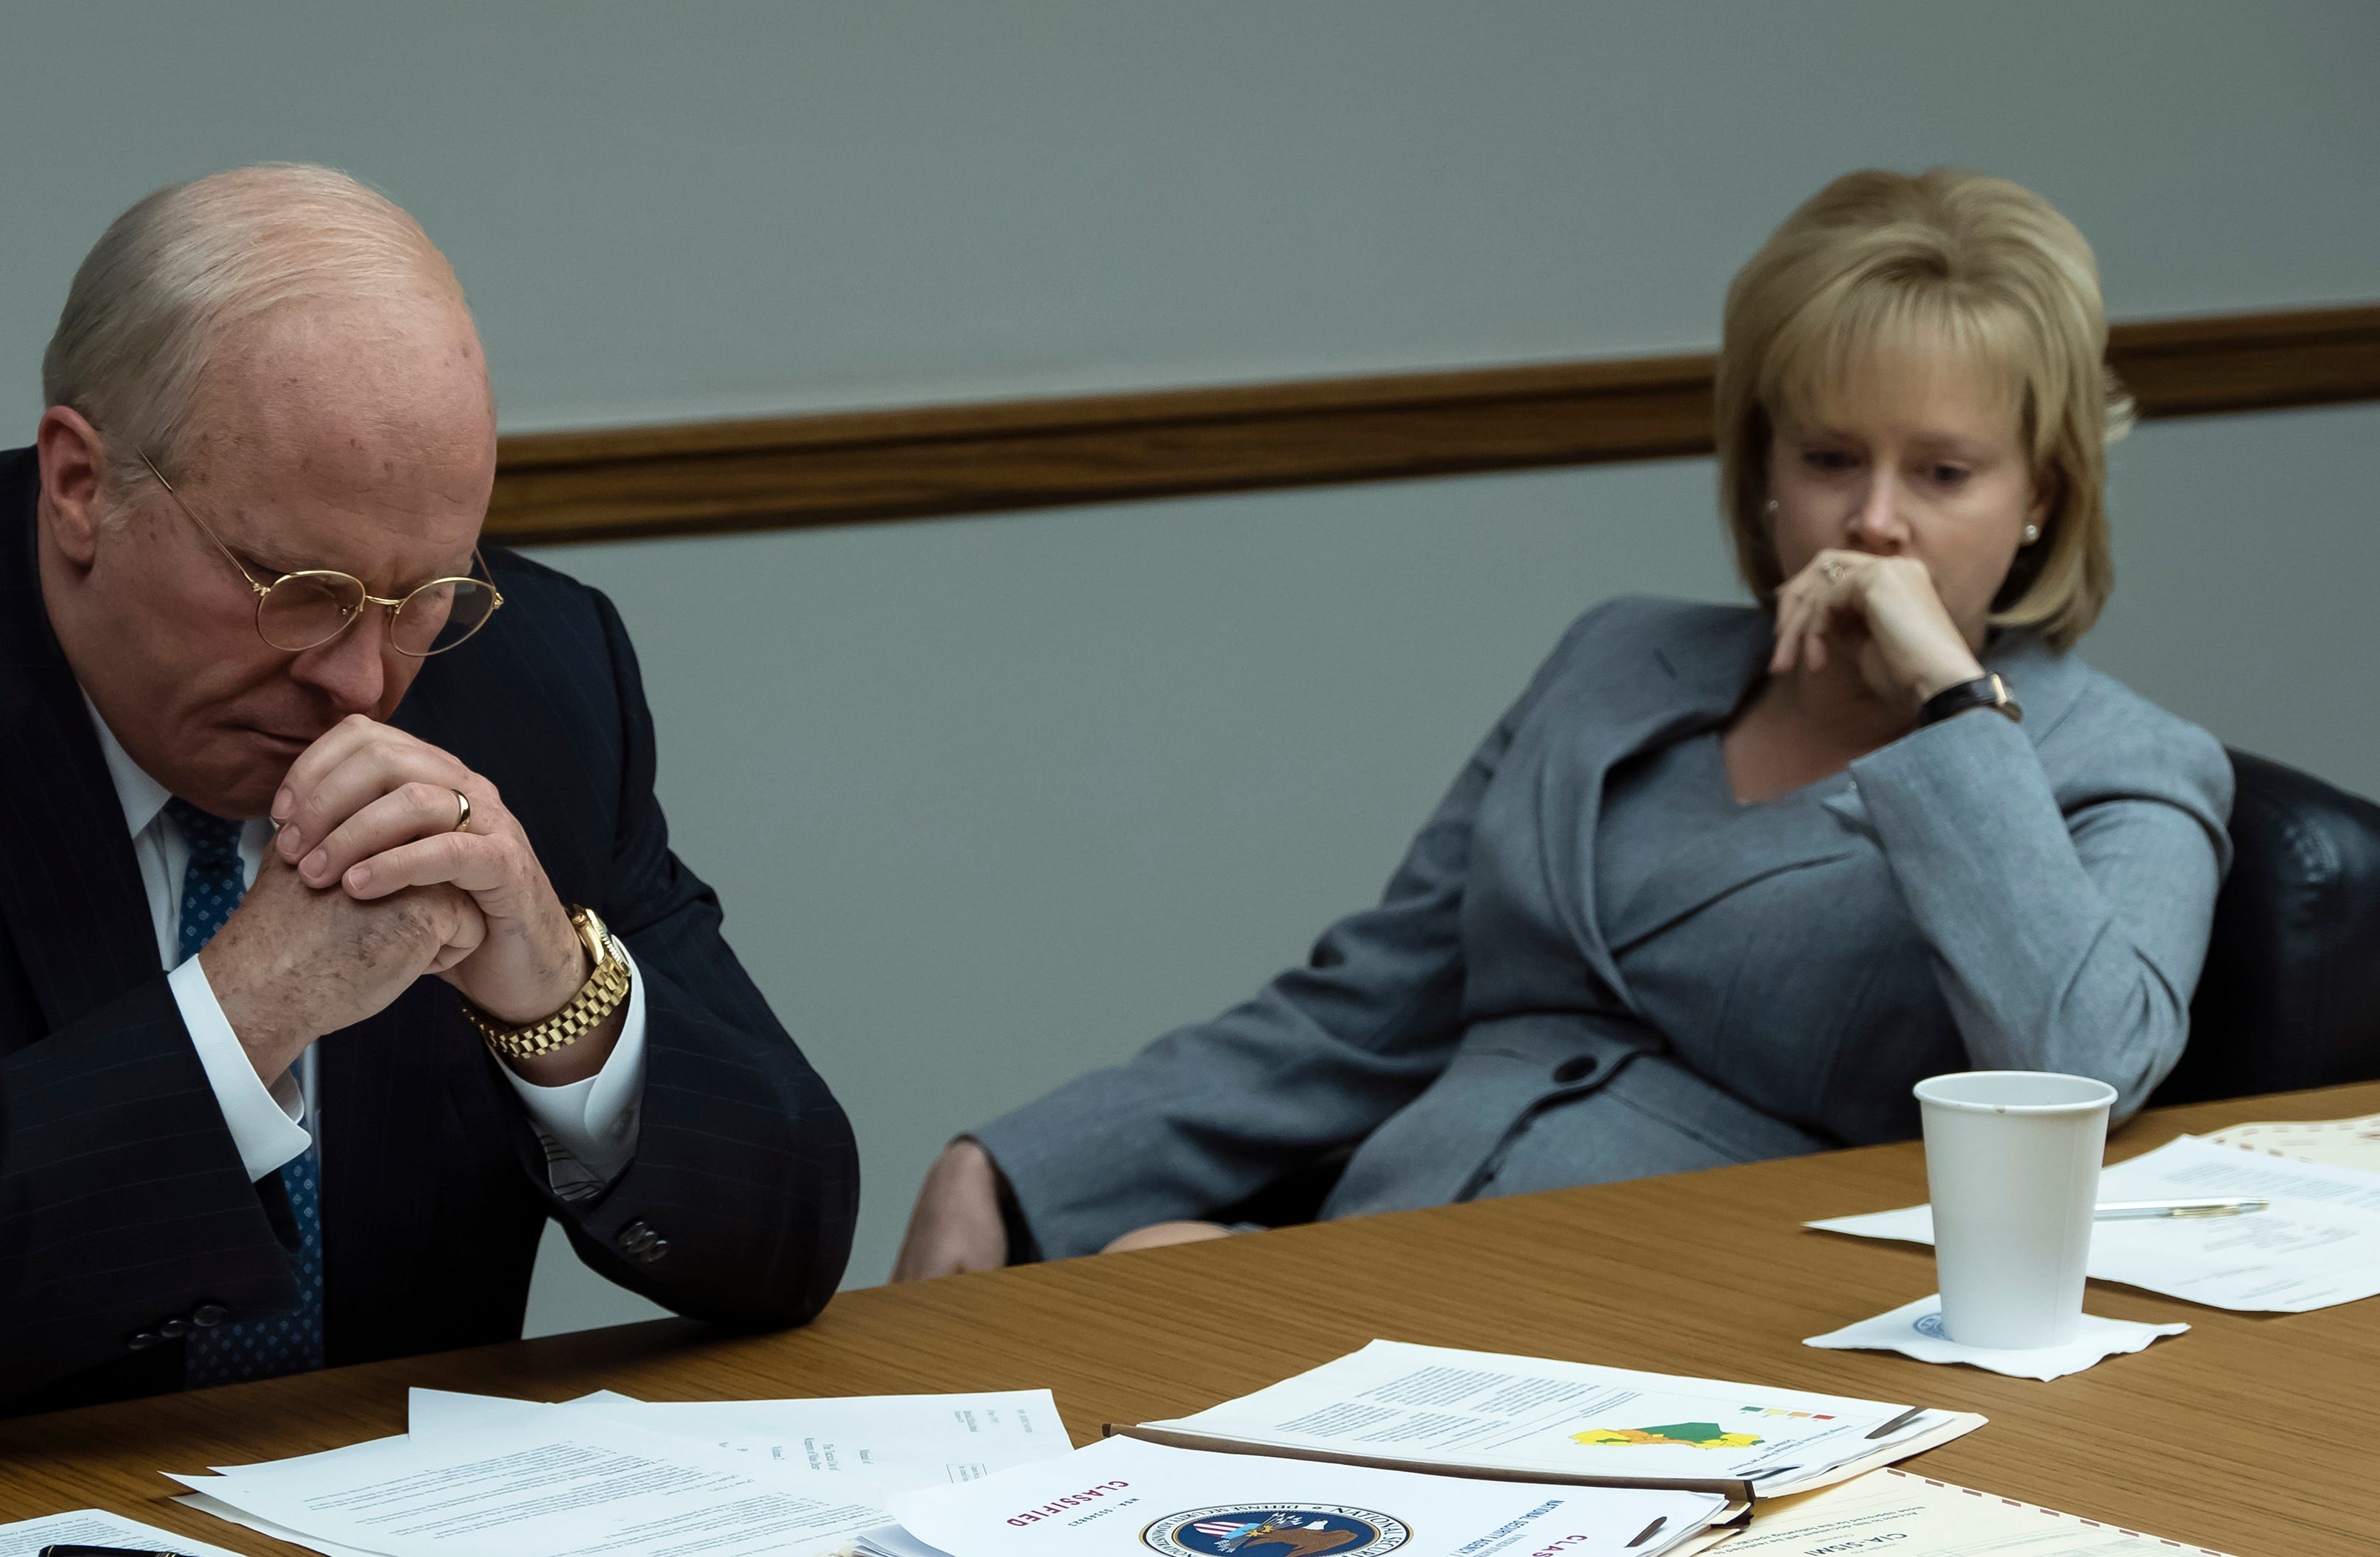 """Christian Bale plays Vice President Dick Cheney and Amy Adams is wife Lynne Cheney in Adam McKay's political drama """"Vice."""""""